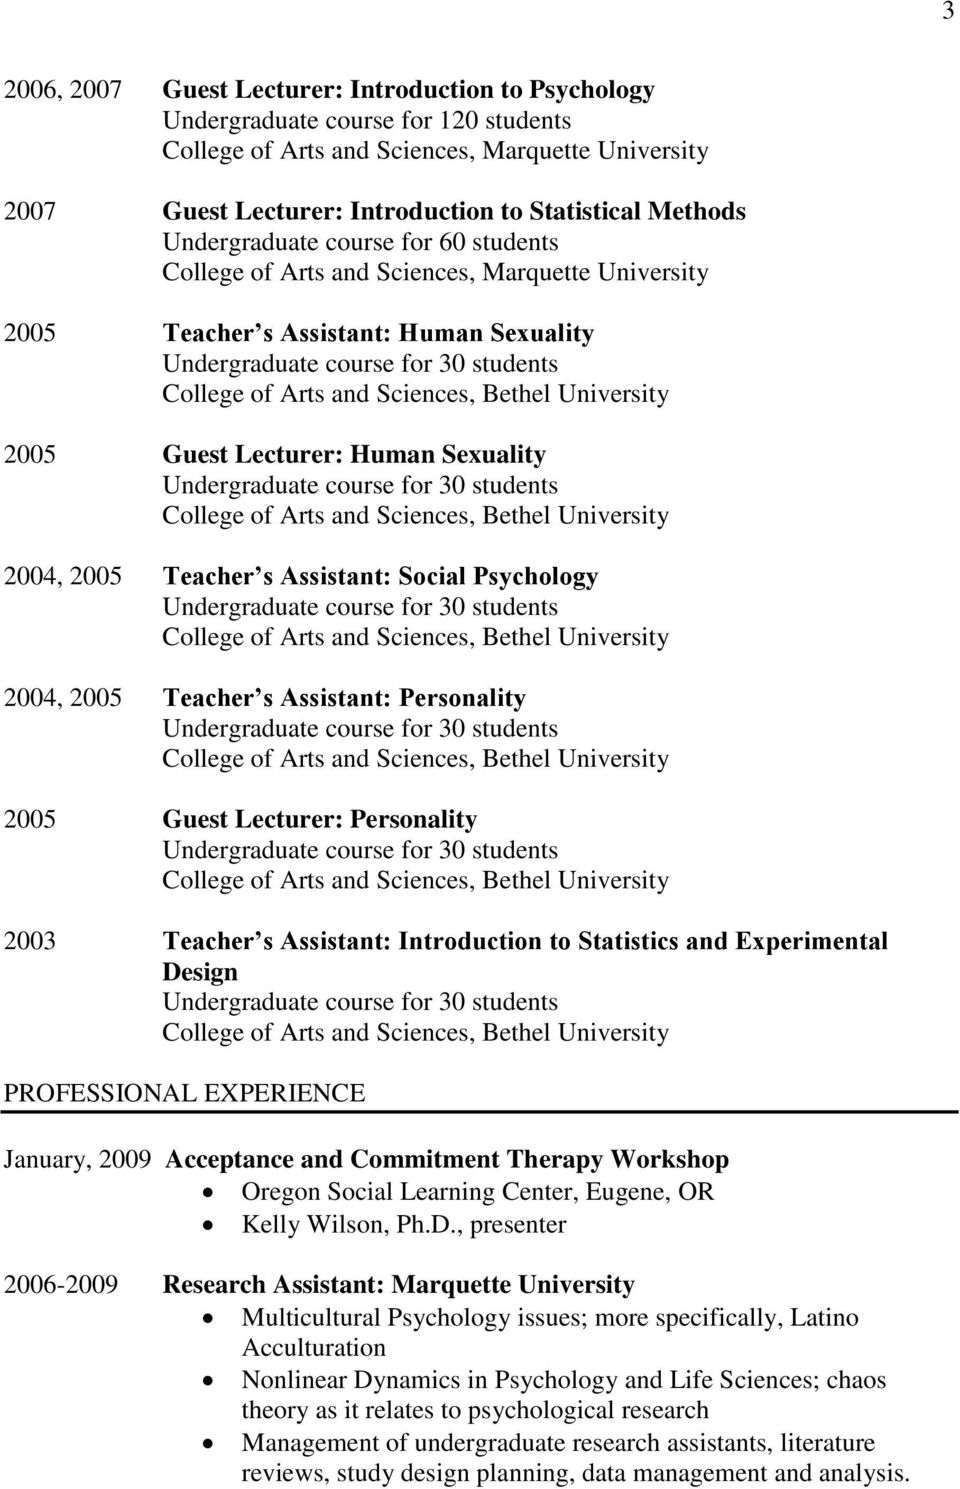 Personality 2003 Teacher s Assistant: Introduction to Statistics and Experimental Design PROFESSIONAL EXPERIENCE January, 2009 Acceptance and Commitment Therapy Workshop Oregon Social Learning